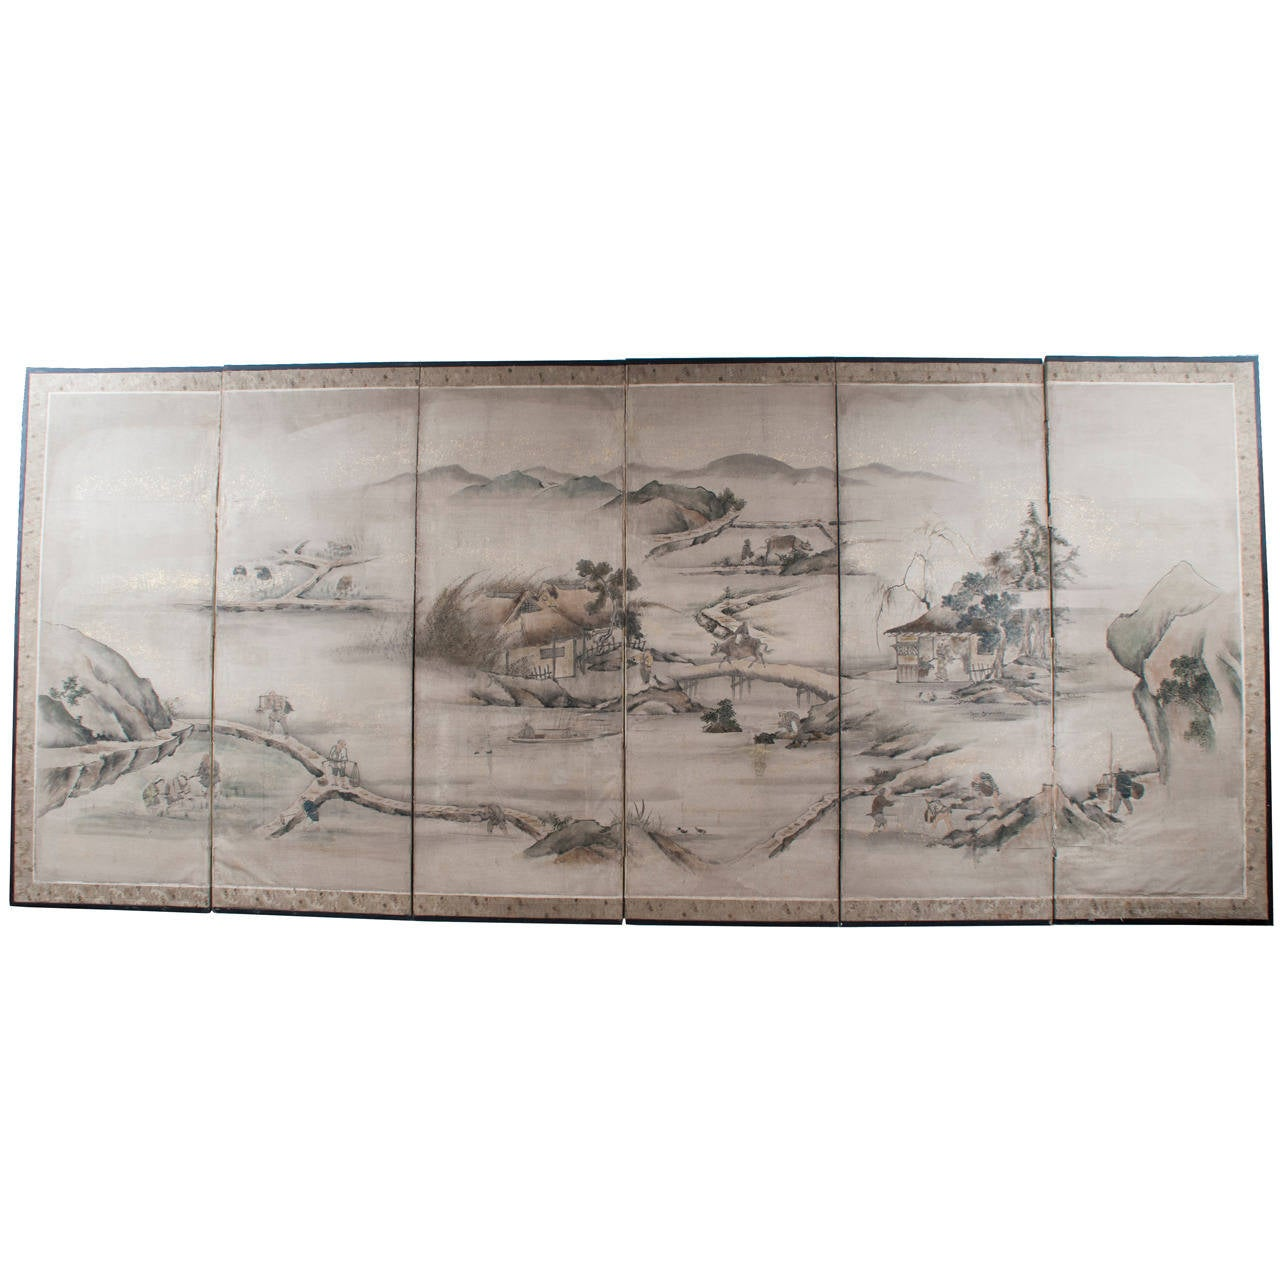 Six-Panel Japanese Screen Depicting a Chinese Landscape